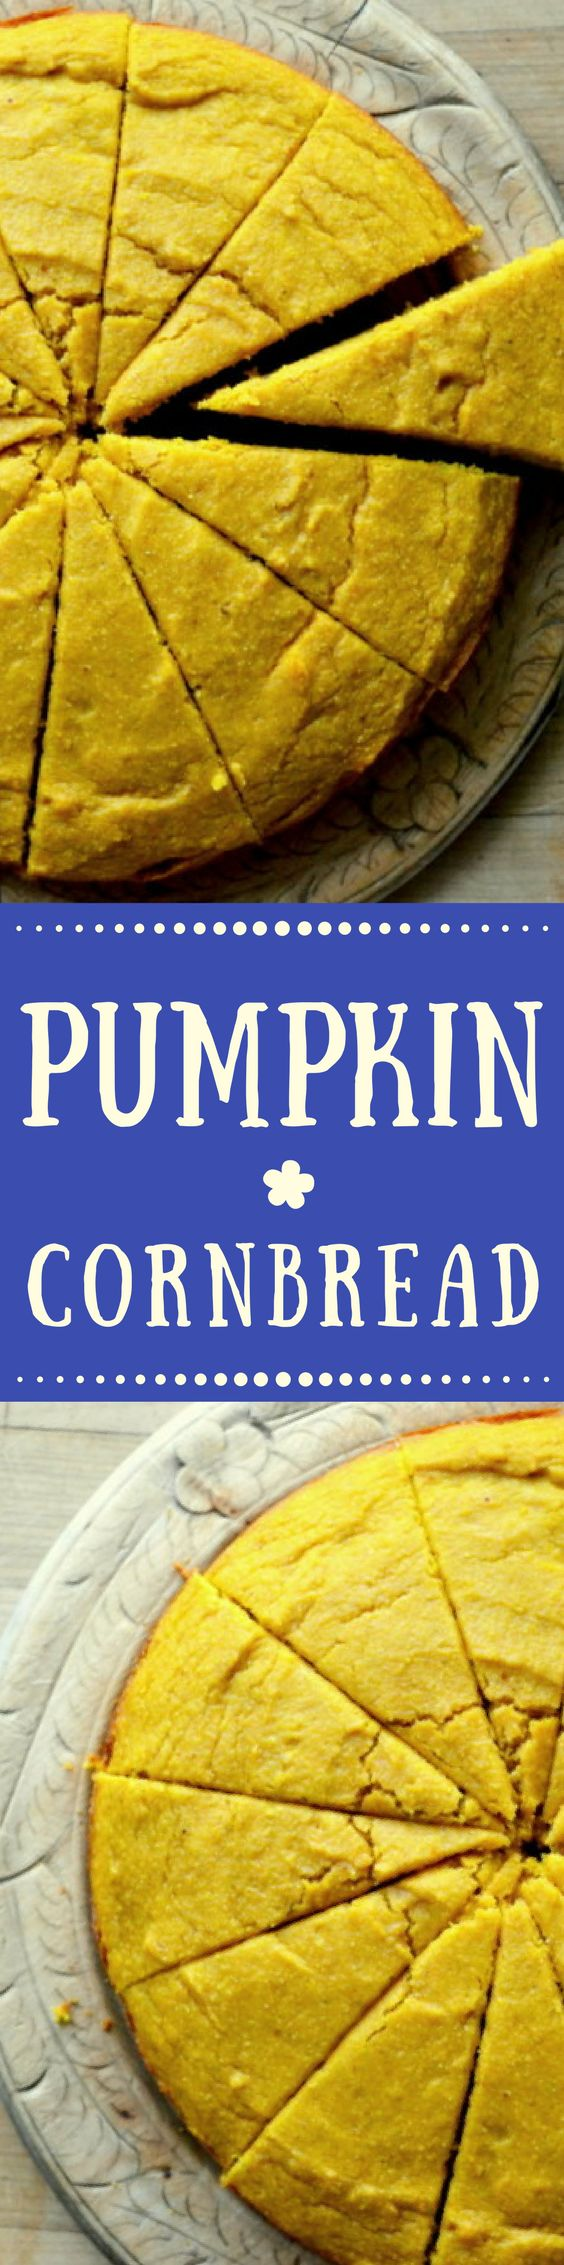 Pumpkin Cornbread is the ultimate Fall and Holiday side dish! ~ theviewfromgreatisland.com